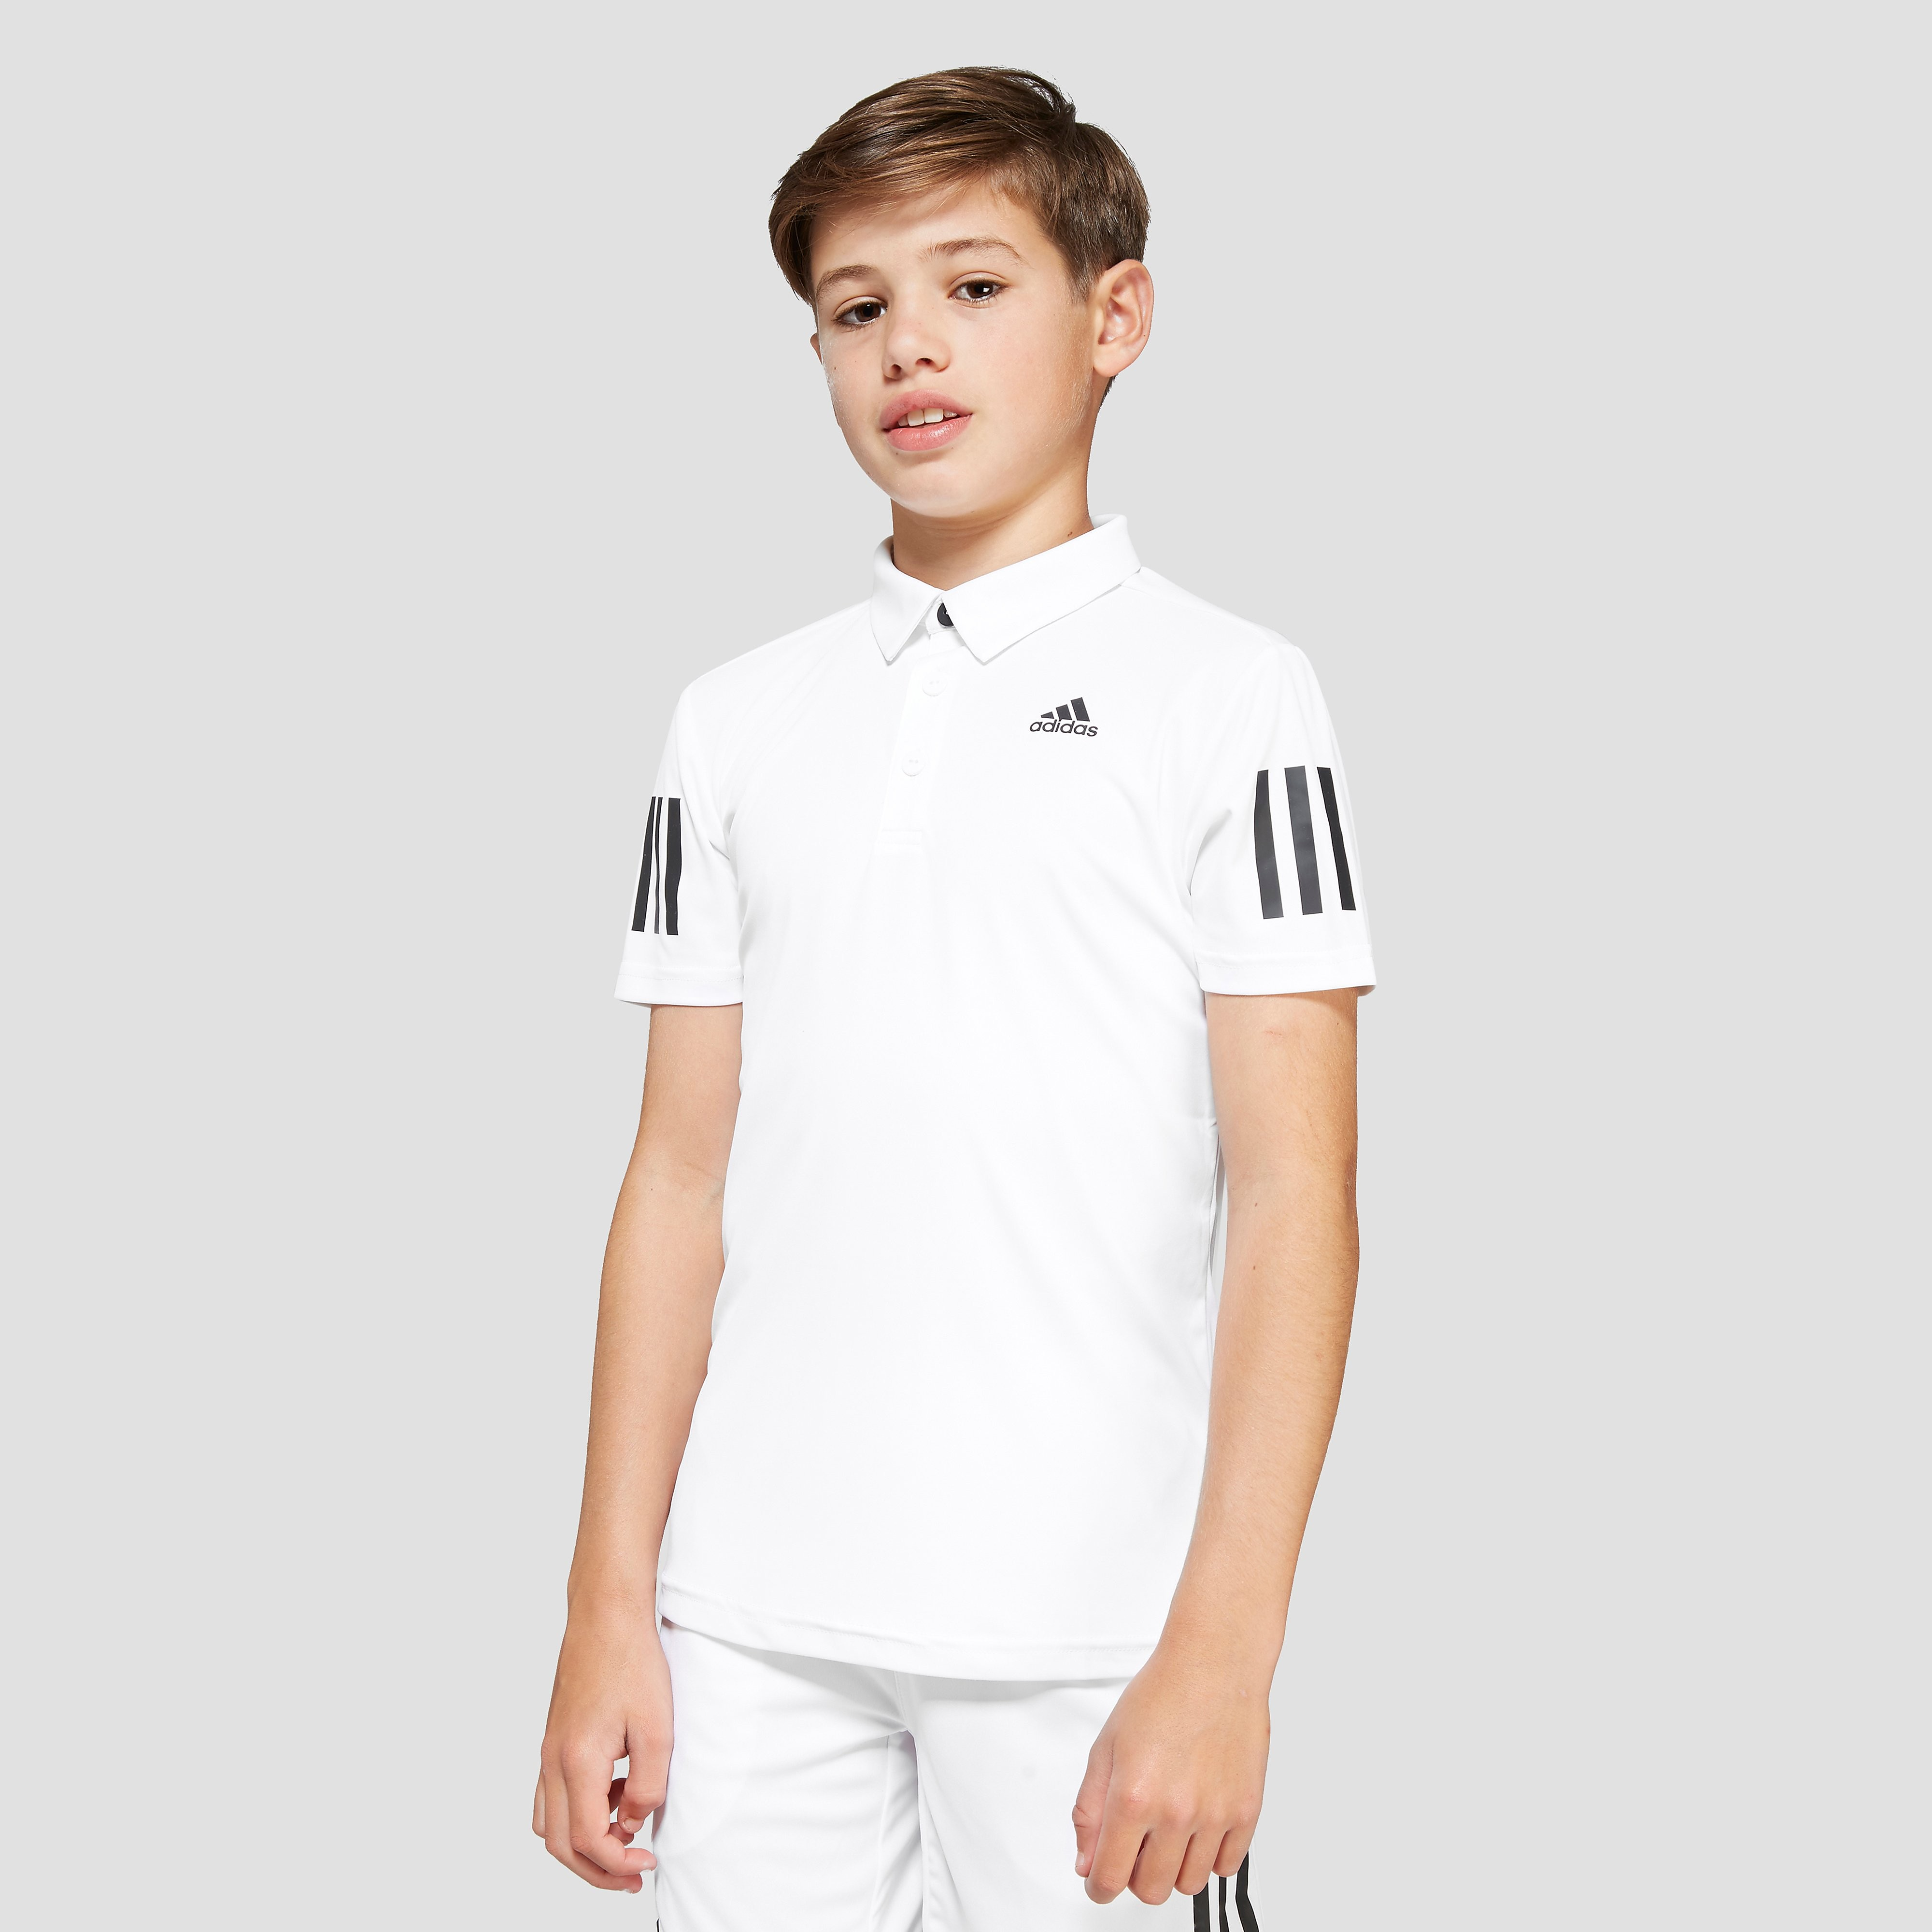 adidas Club Junior Tennis Polo Shirt